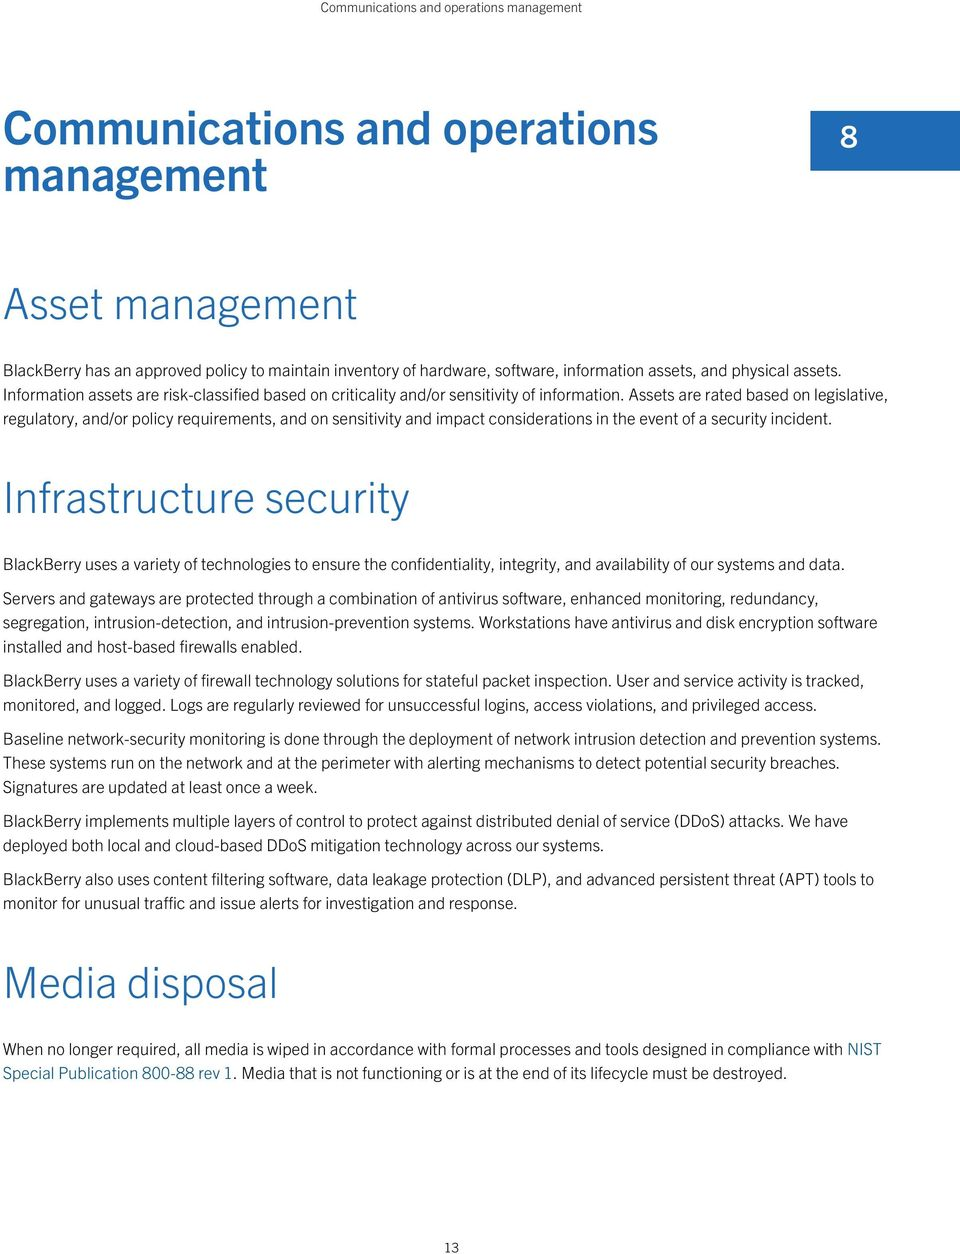 Assets are rated based on legislative, regulatory, and/or policy requirements, and on sensitivity and impact considerations in the event of a security incident.